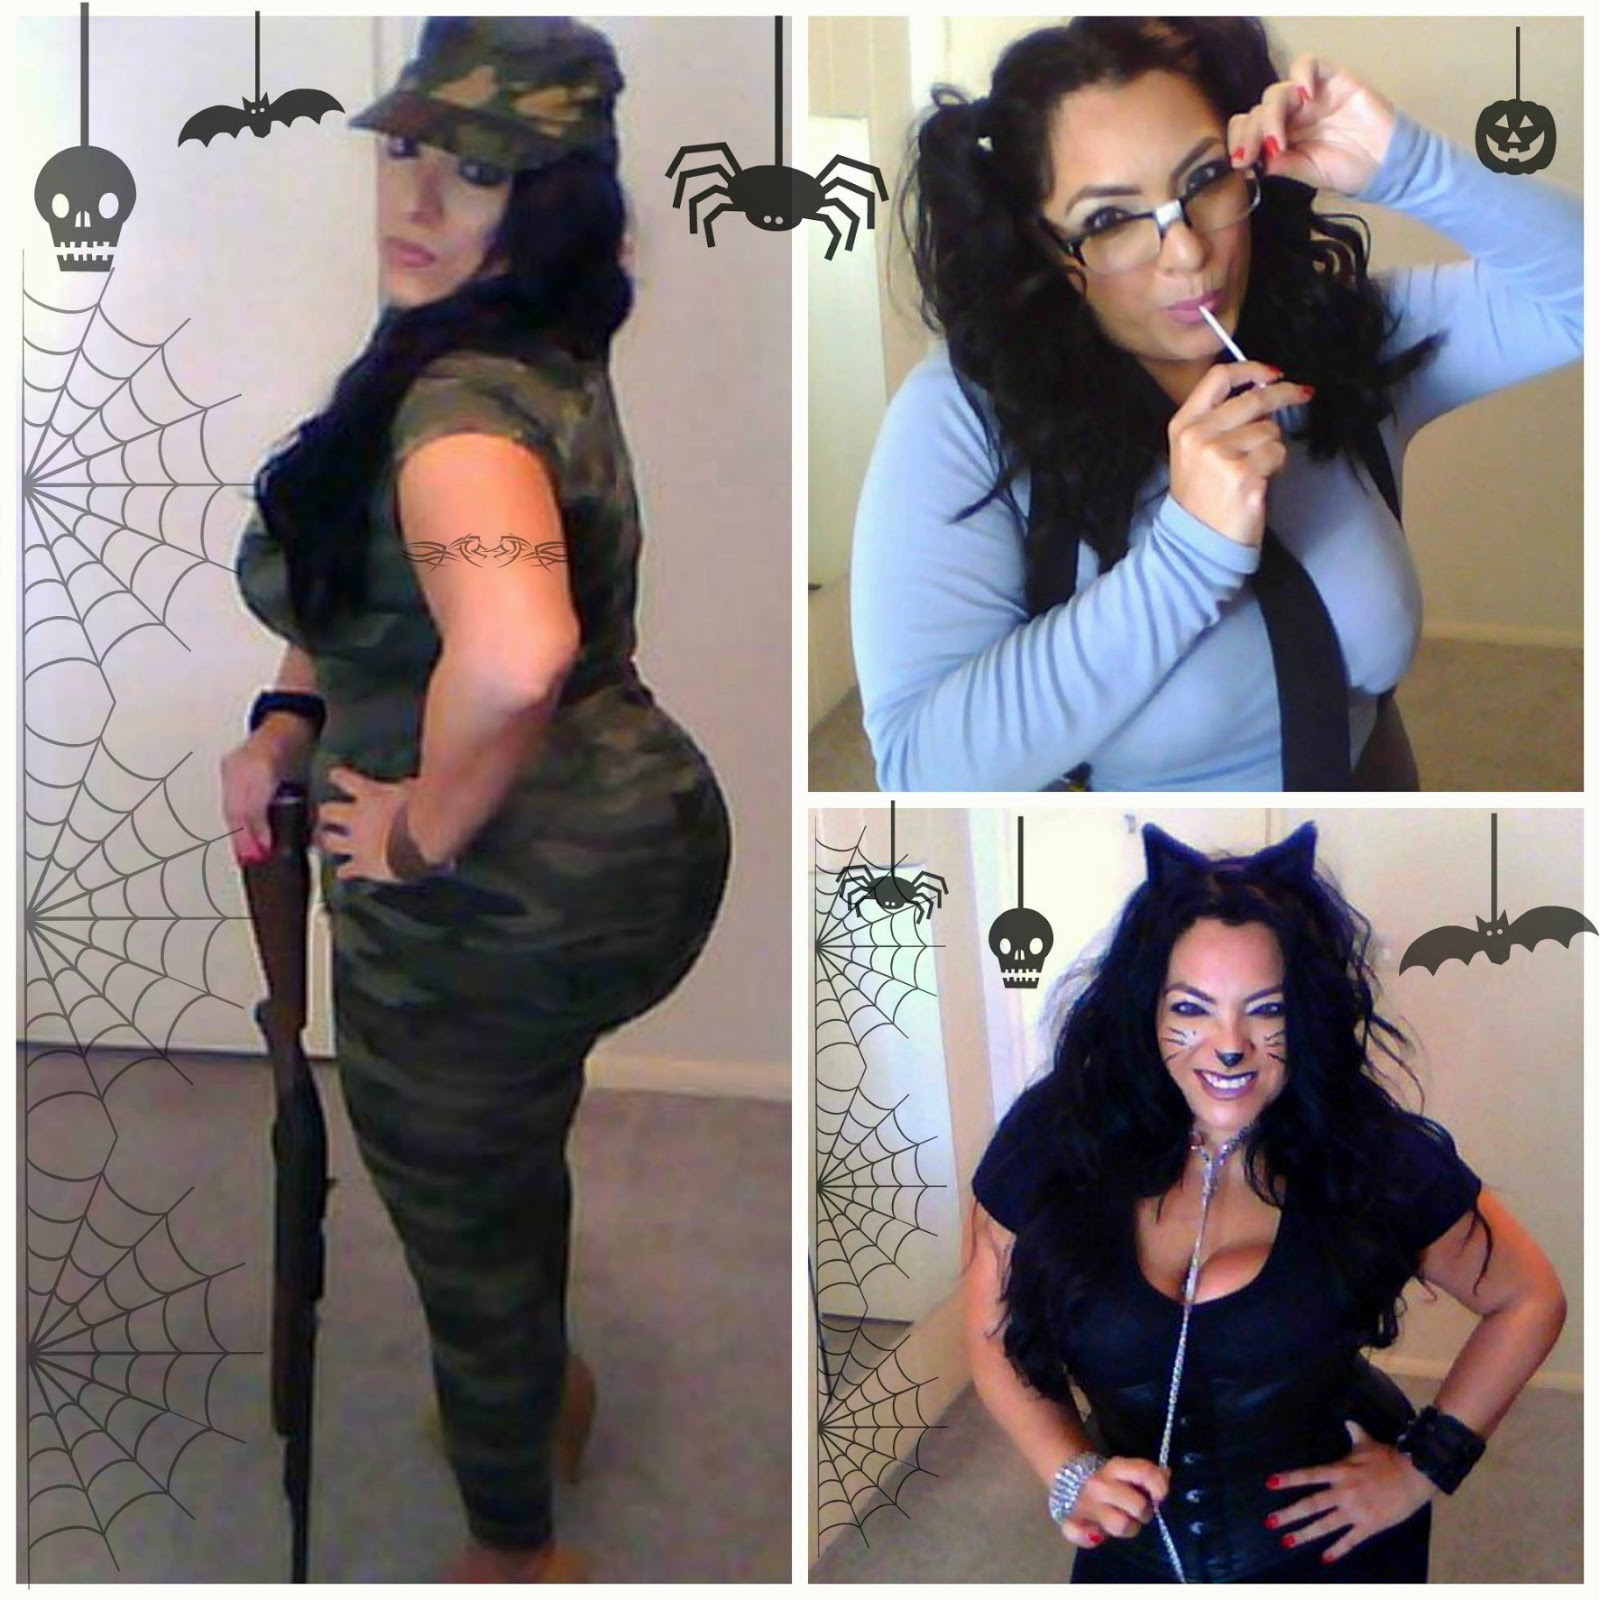 Hello Las Check Out My Video Below For Some Simple Easy Diy Costumes These Ideas Are Y Fun And Plus Size Friendly